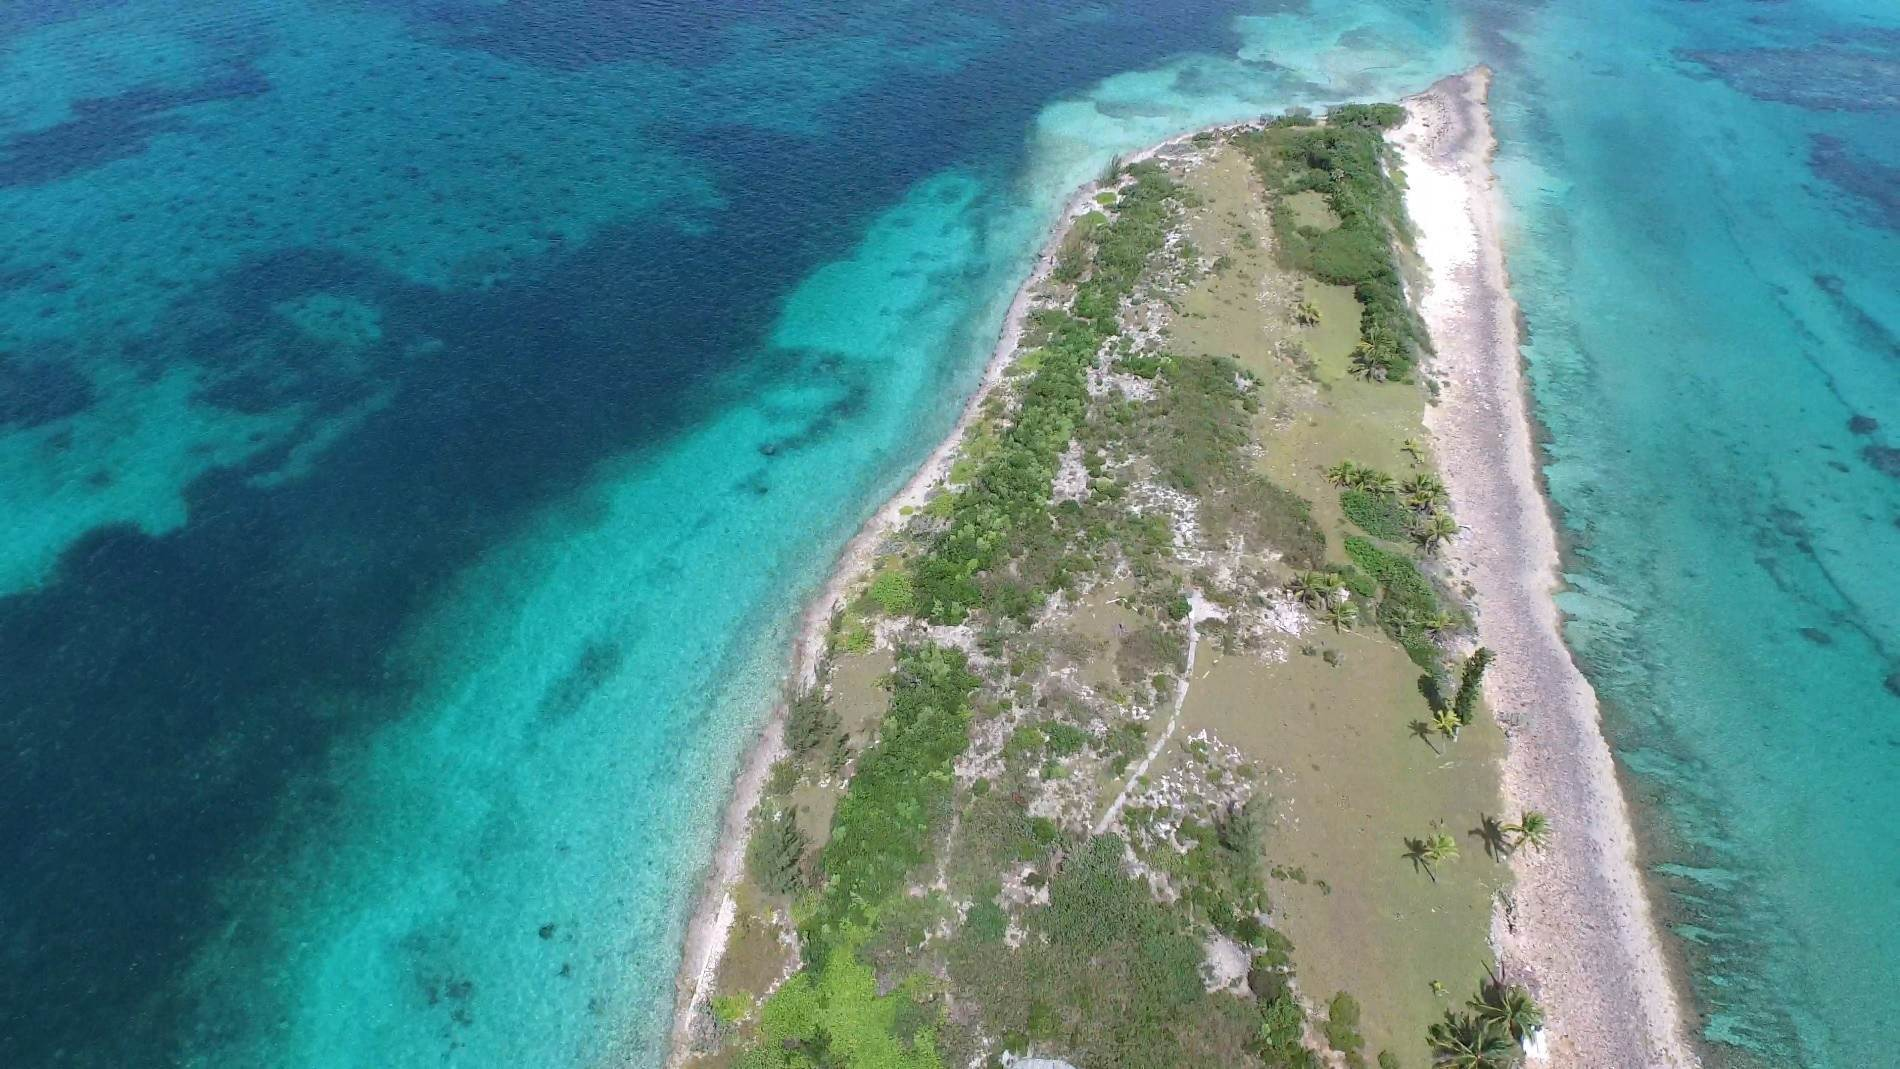 17. Private Islands for Sale at Pierre Island, A Perfect Private Retreat Island Near Harbour Island - MLS 40806 Harbour Island, Eleuthera, Bahamas